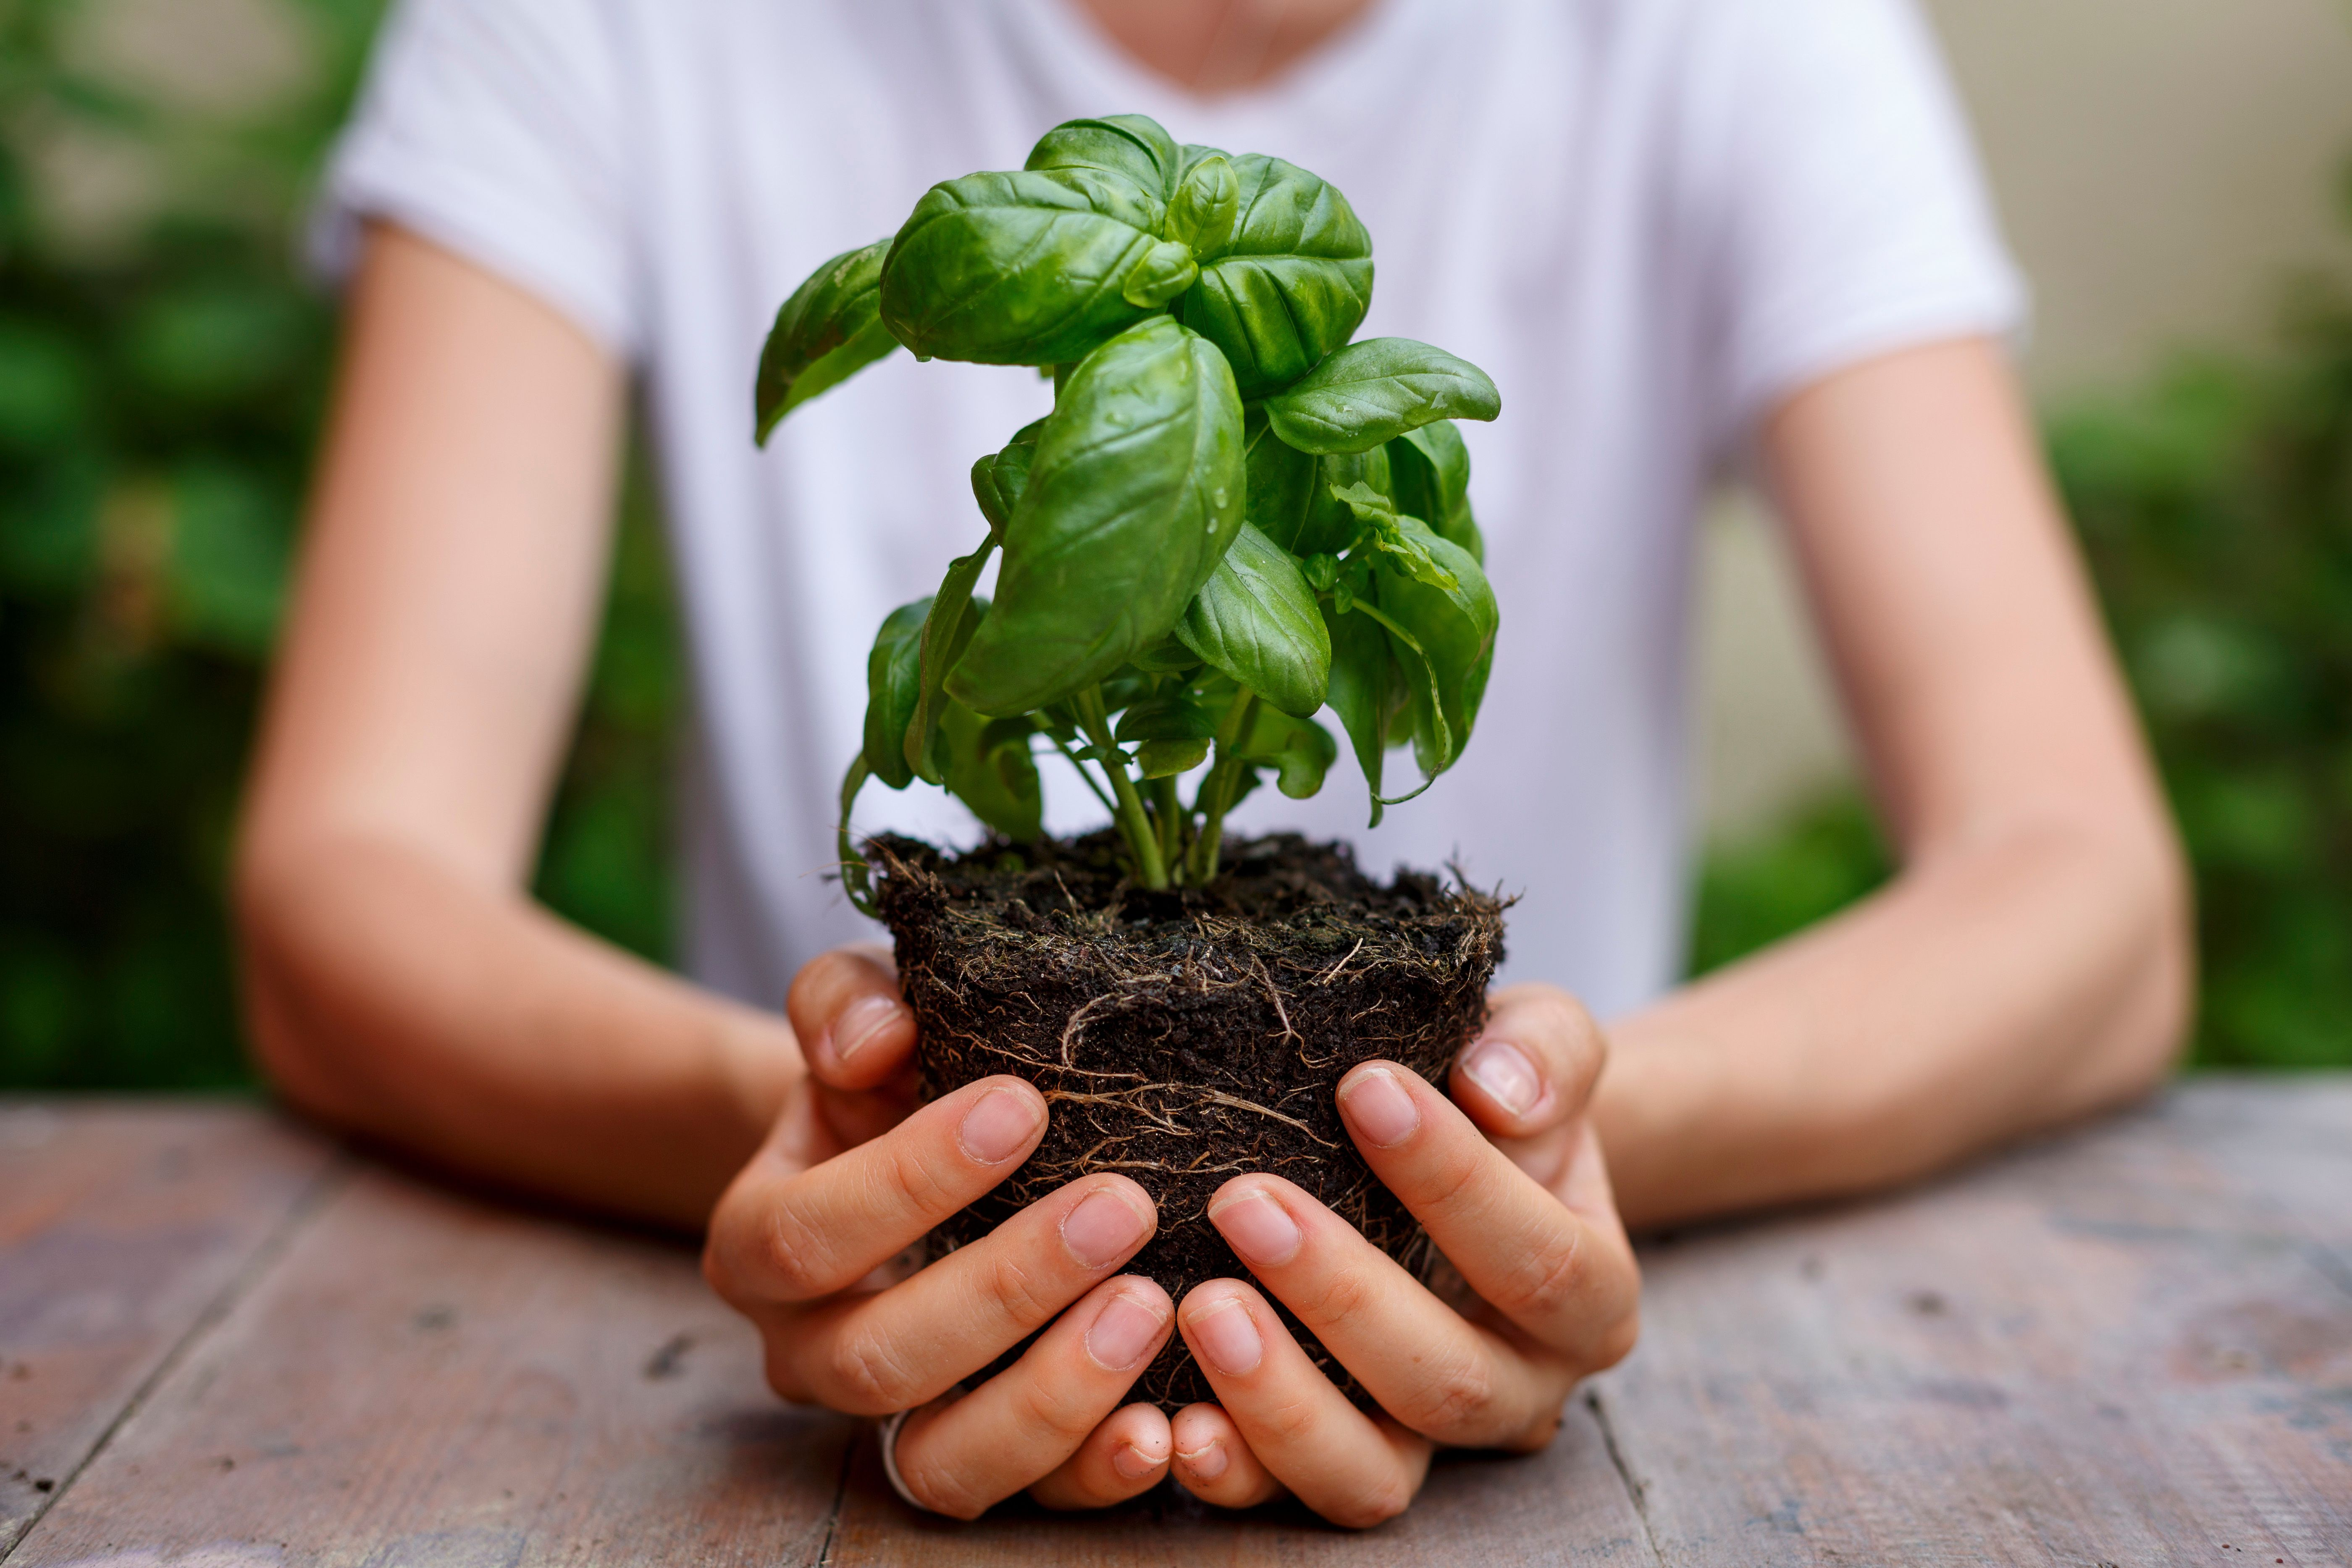 Hands holding a basil plant